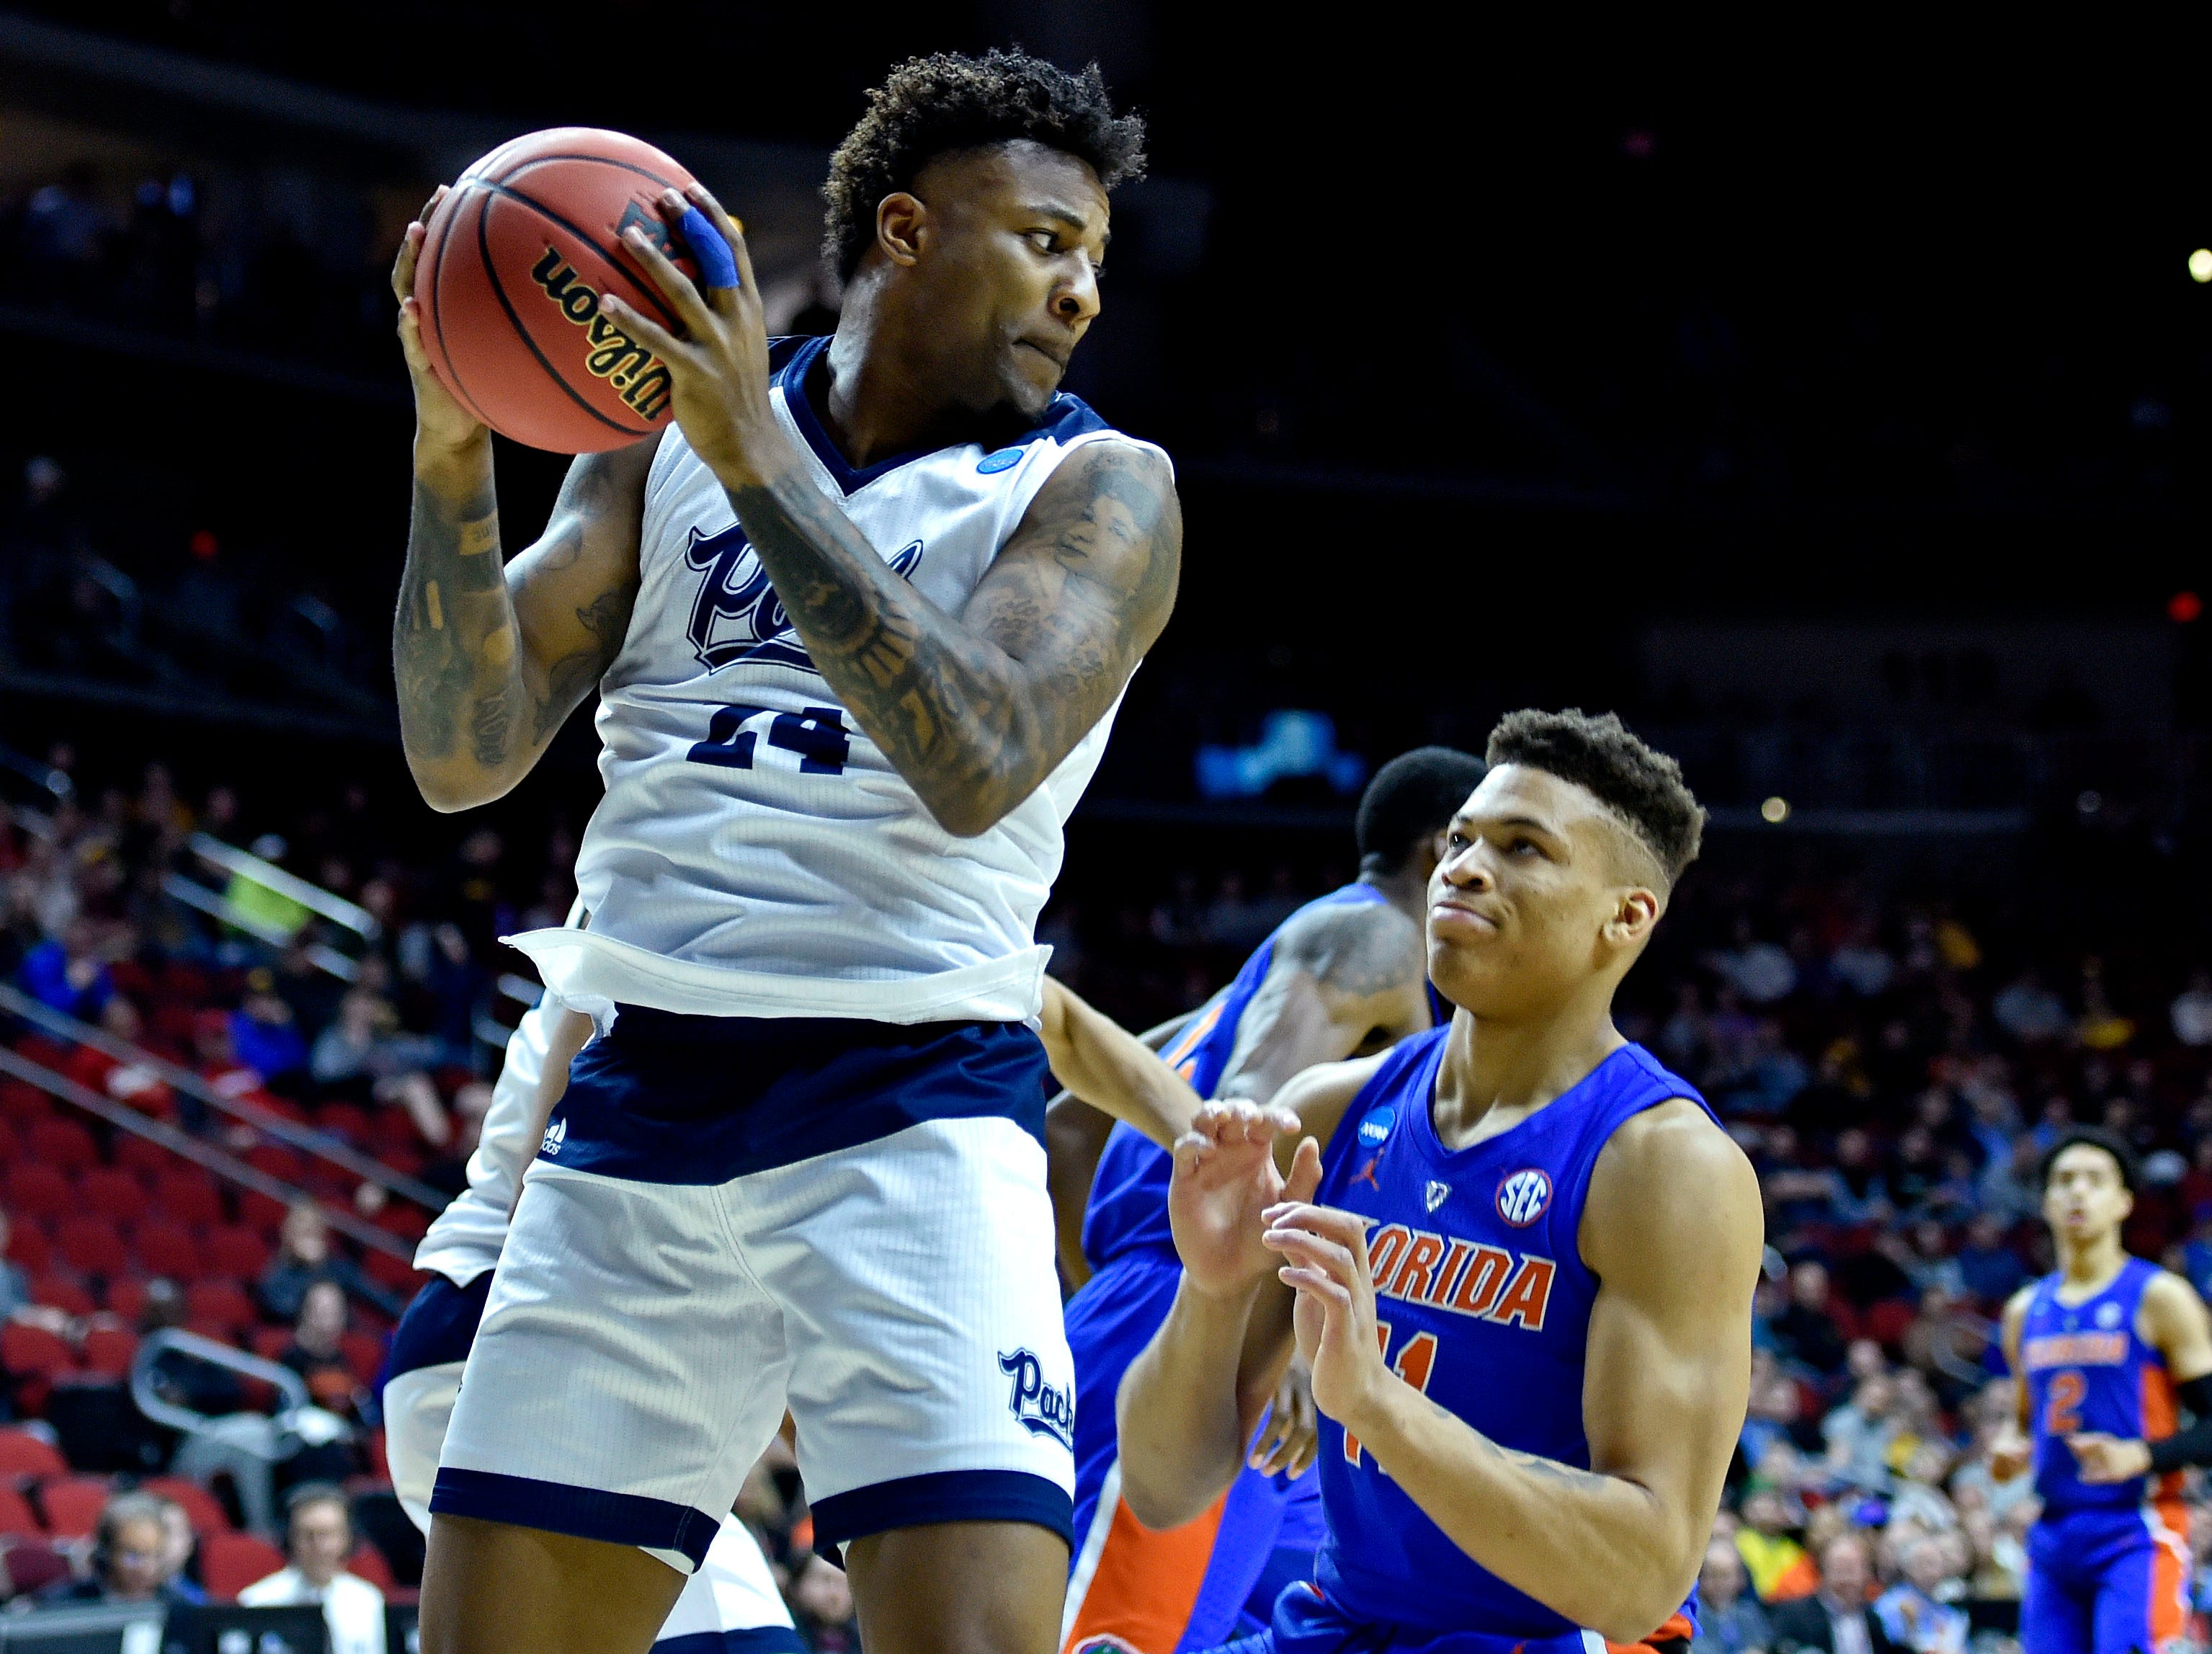 Mar 21, 2019; Des Moines, IA, United States; Nevada Wolf Pack forward Jordan Caroline (24) gets a rebound over Florida Gators forward Keyontae Johnson (11) during the first half in the first round of the 2019 NCAA Tournament at Wells Fargo Arena. Mandatory Credit: Jeffrey Becker-USA TODAY Sports